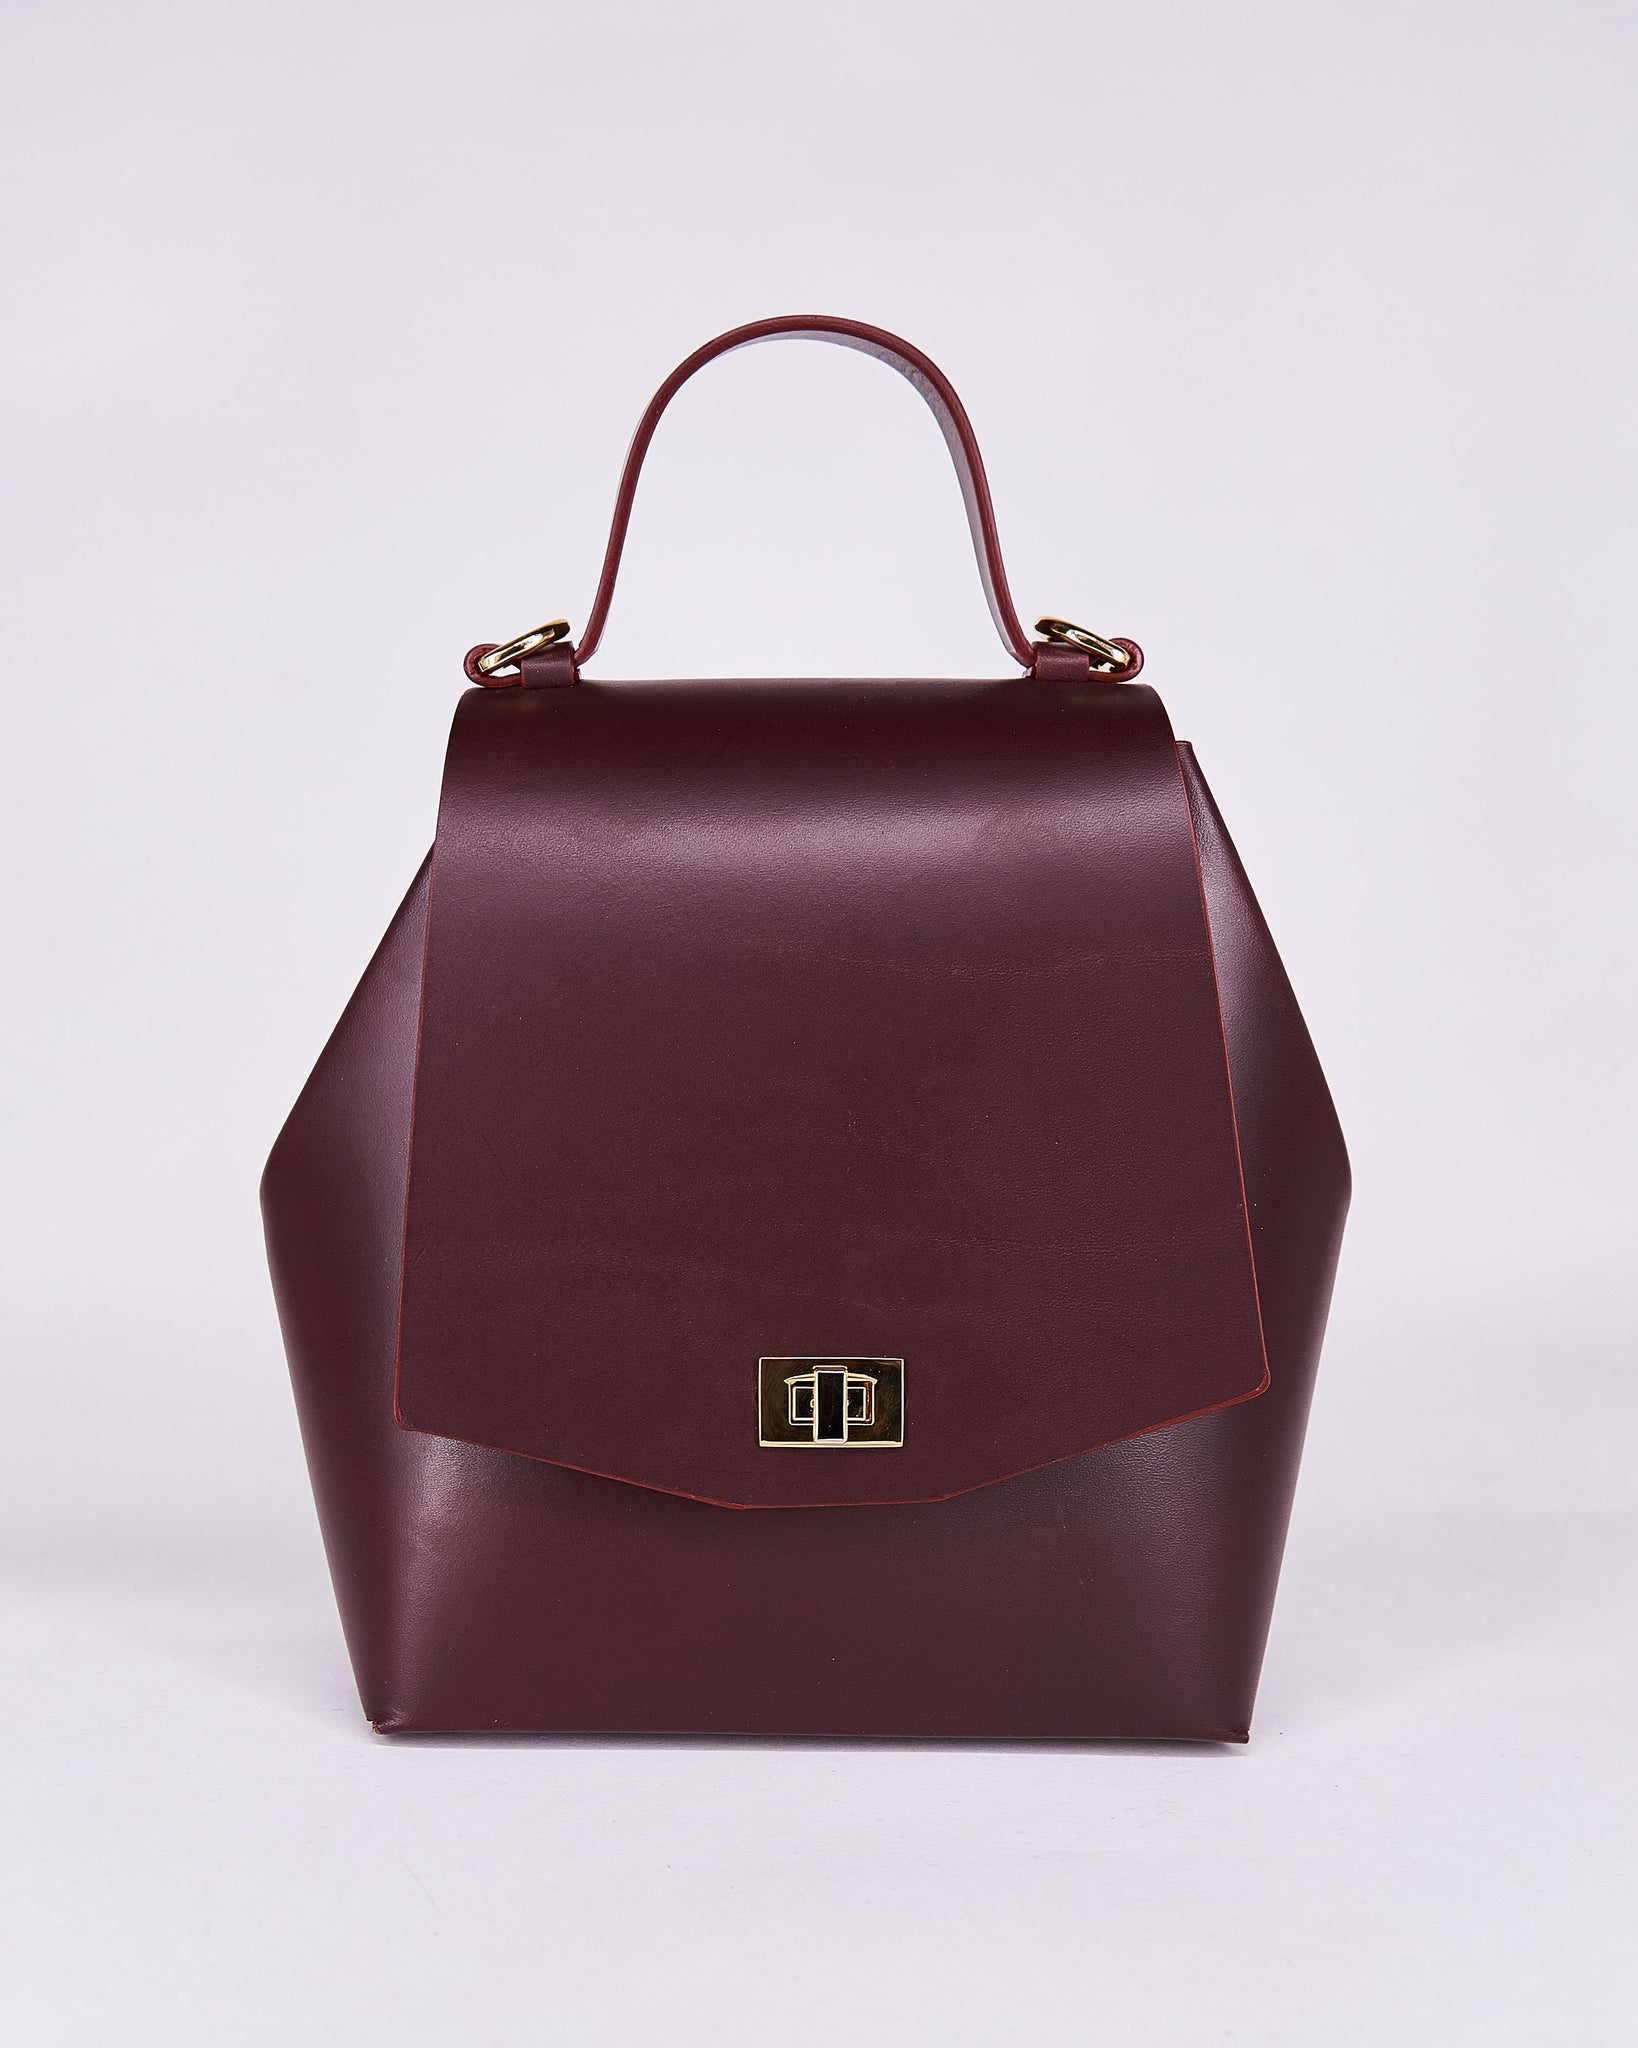 HexBag-Bordeaux-Leather-DesignedbyNuovum-Localdesigners-Barcelona-Front